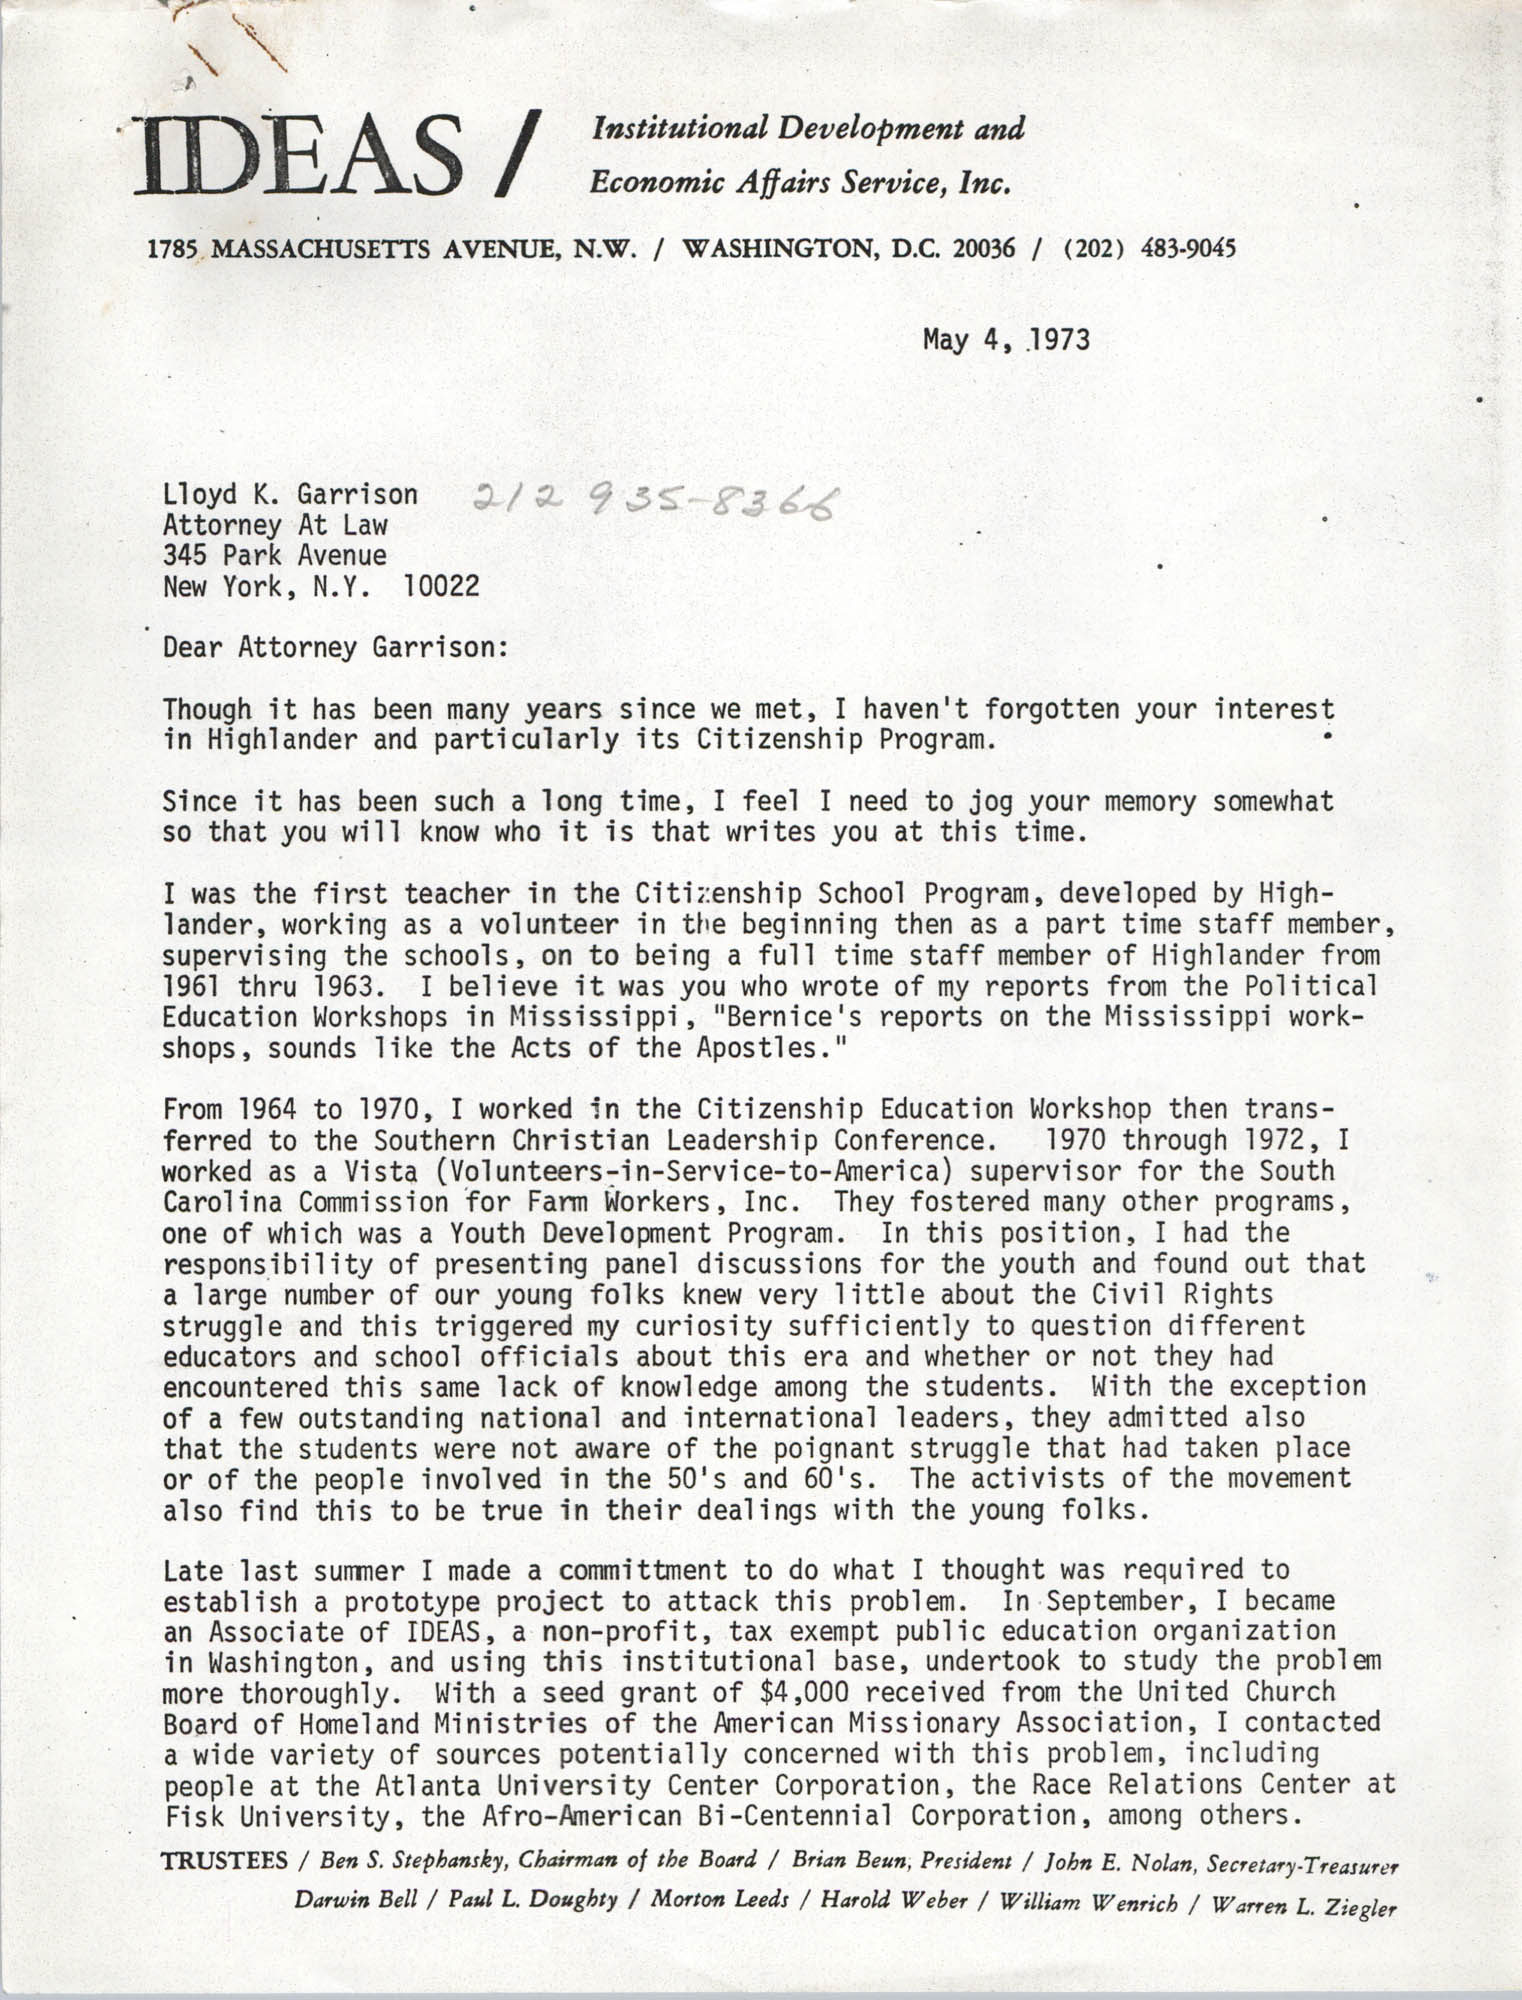 Letter from Bernice Robinson to Lloyd K. Garrison, May 4, 1973, Page 1